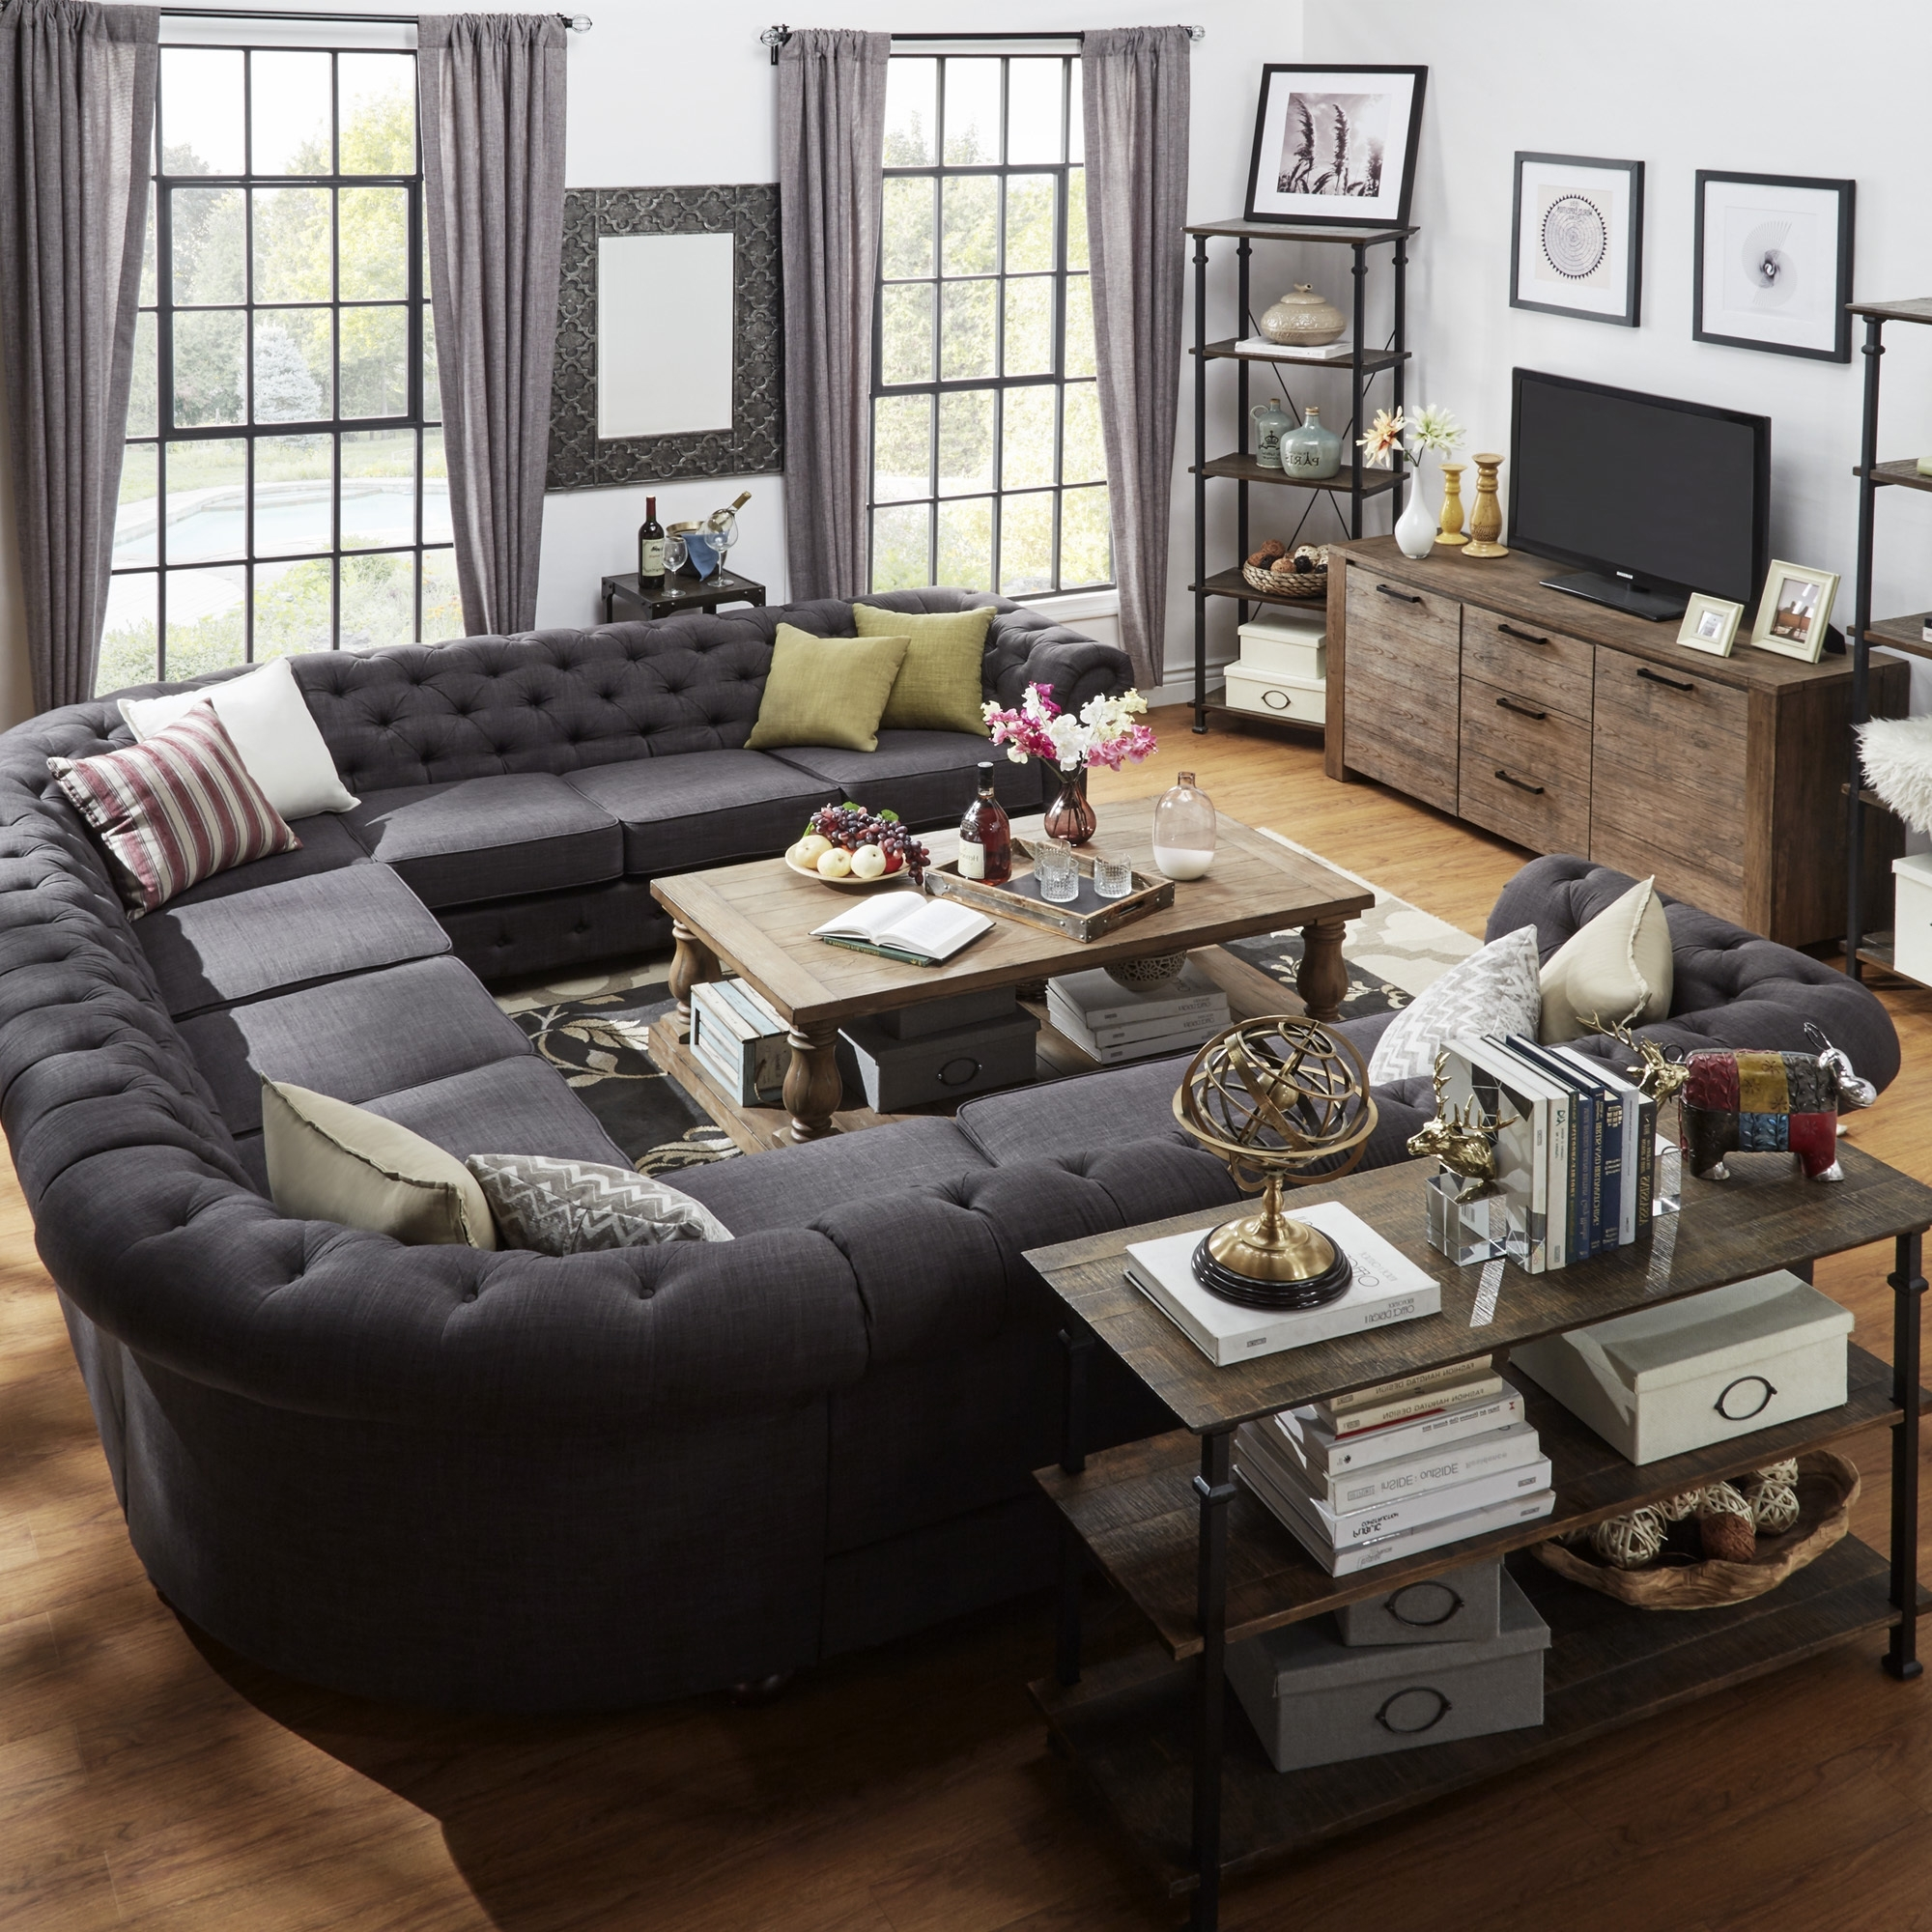 2019 Sofa : Corner Sectionals Gray Tufted Sectional Children's Beds For In U Shaped Sectionals (View 1 of 20)